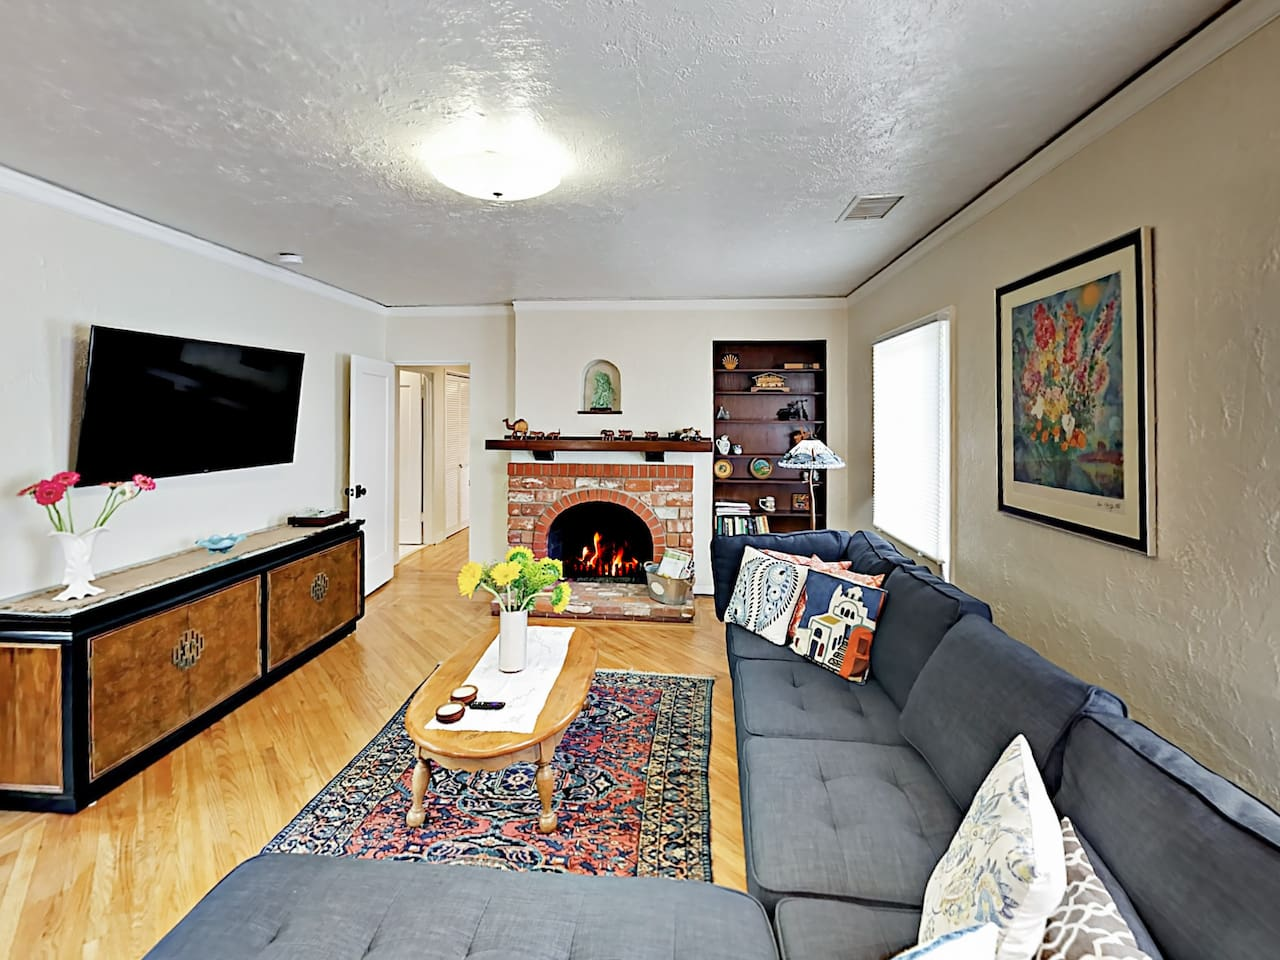 Welcome to Ventura! Your home is professionally managed by TurnKey Vacation Rentals.